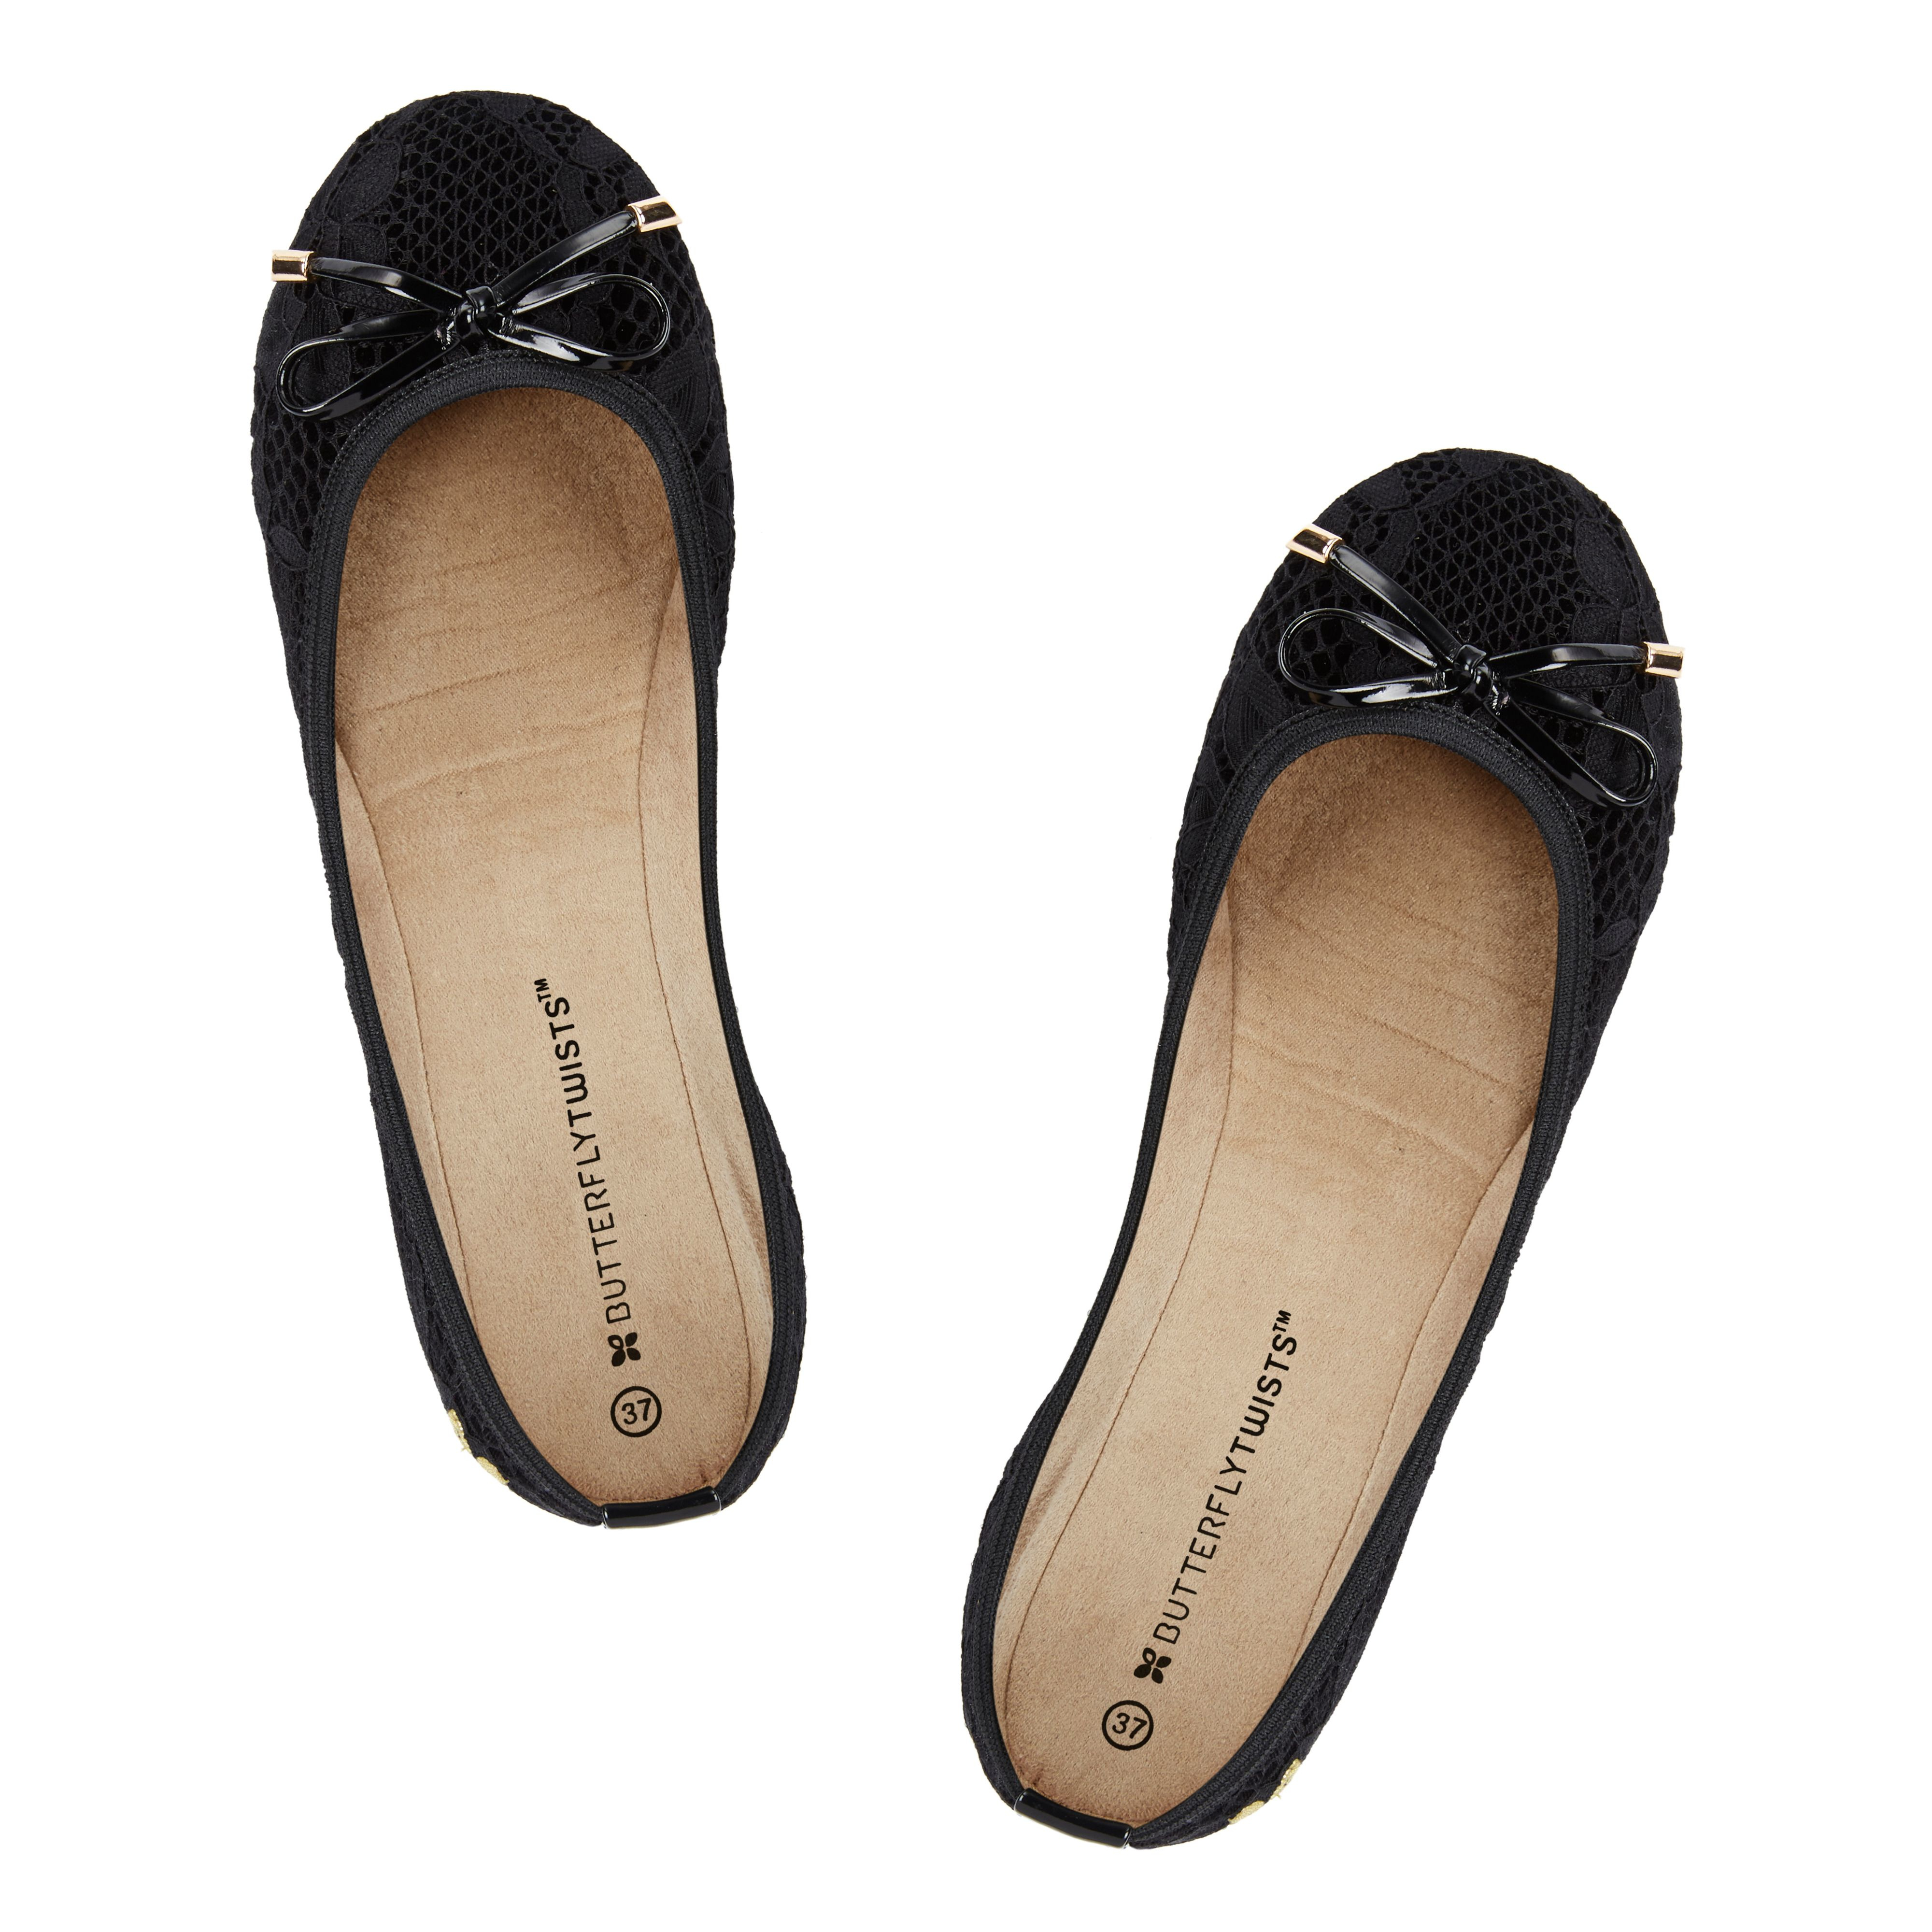 butterfly twists ballerina shoe in black lyst. Black Bedroom Furniture Sets. Home Design Ideas